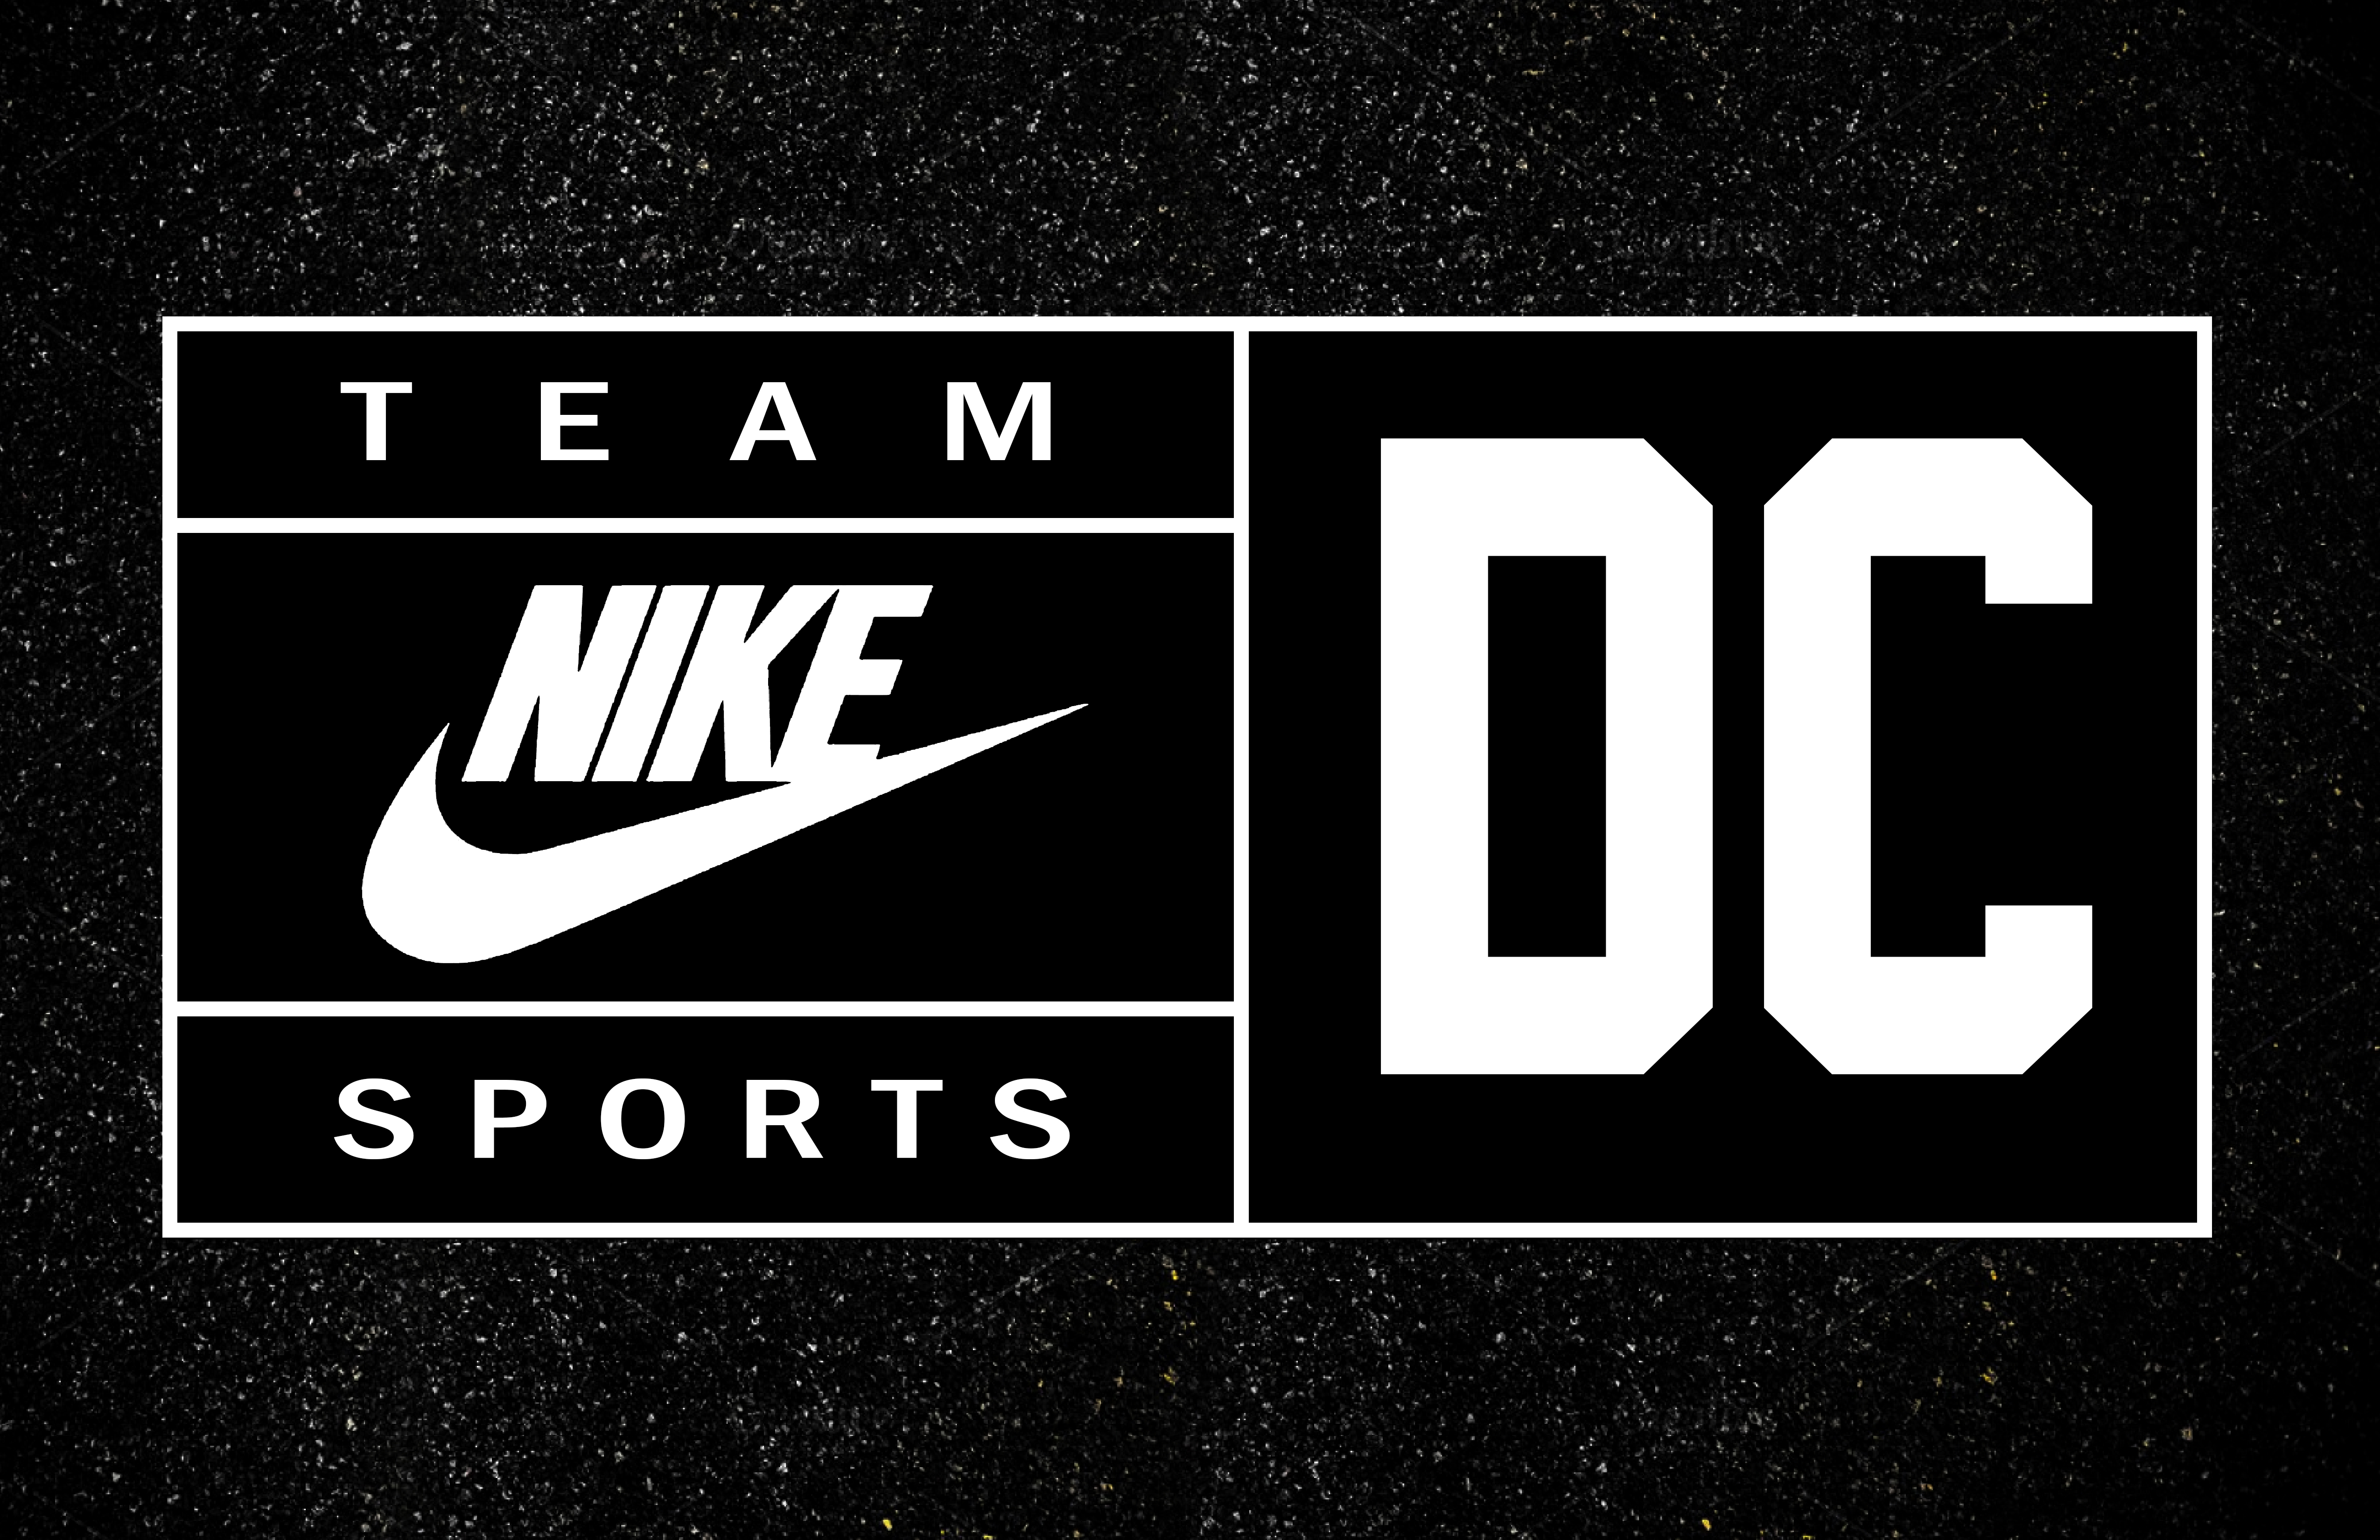 New Nike Sportwear Merch Added to the Collection